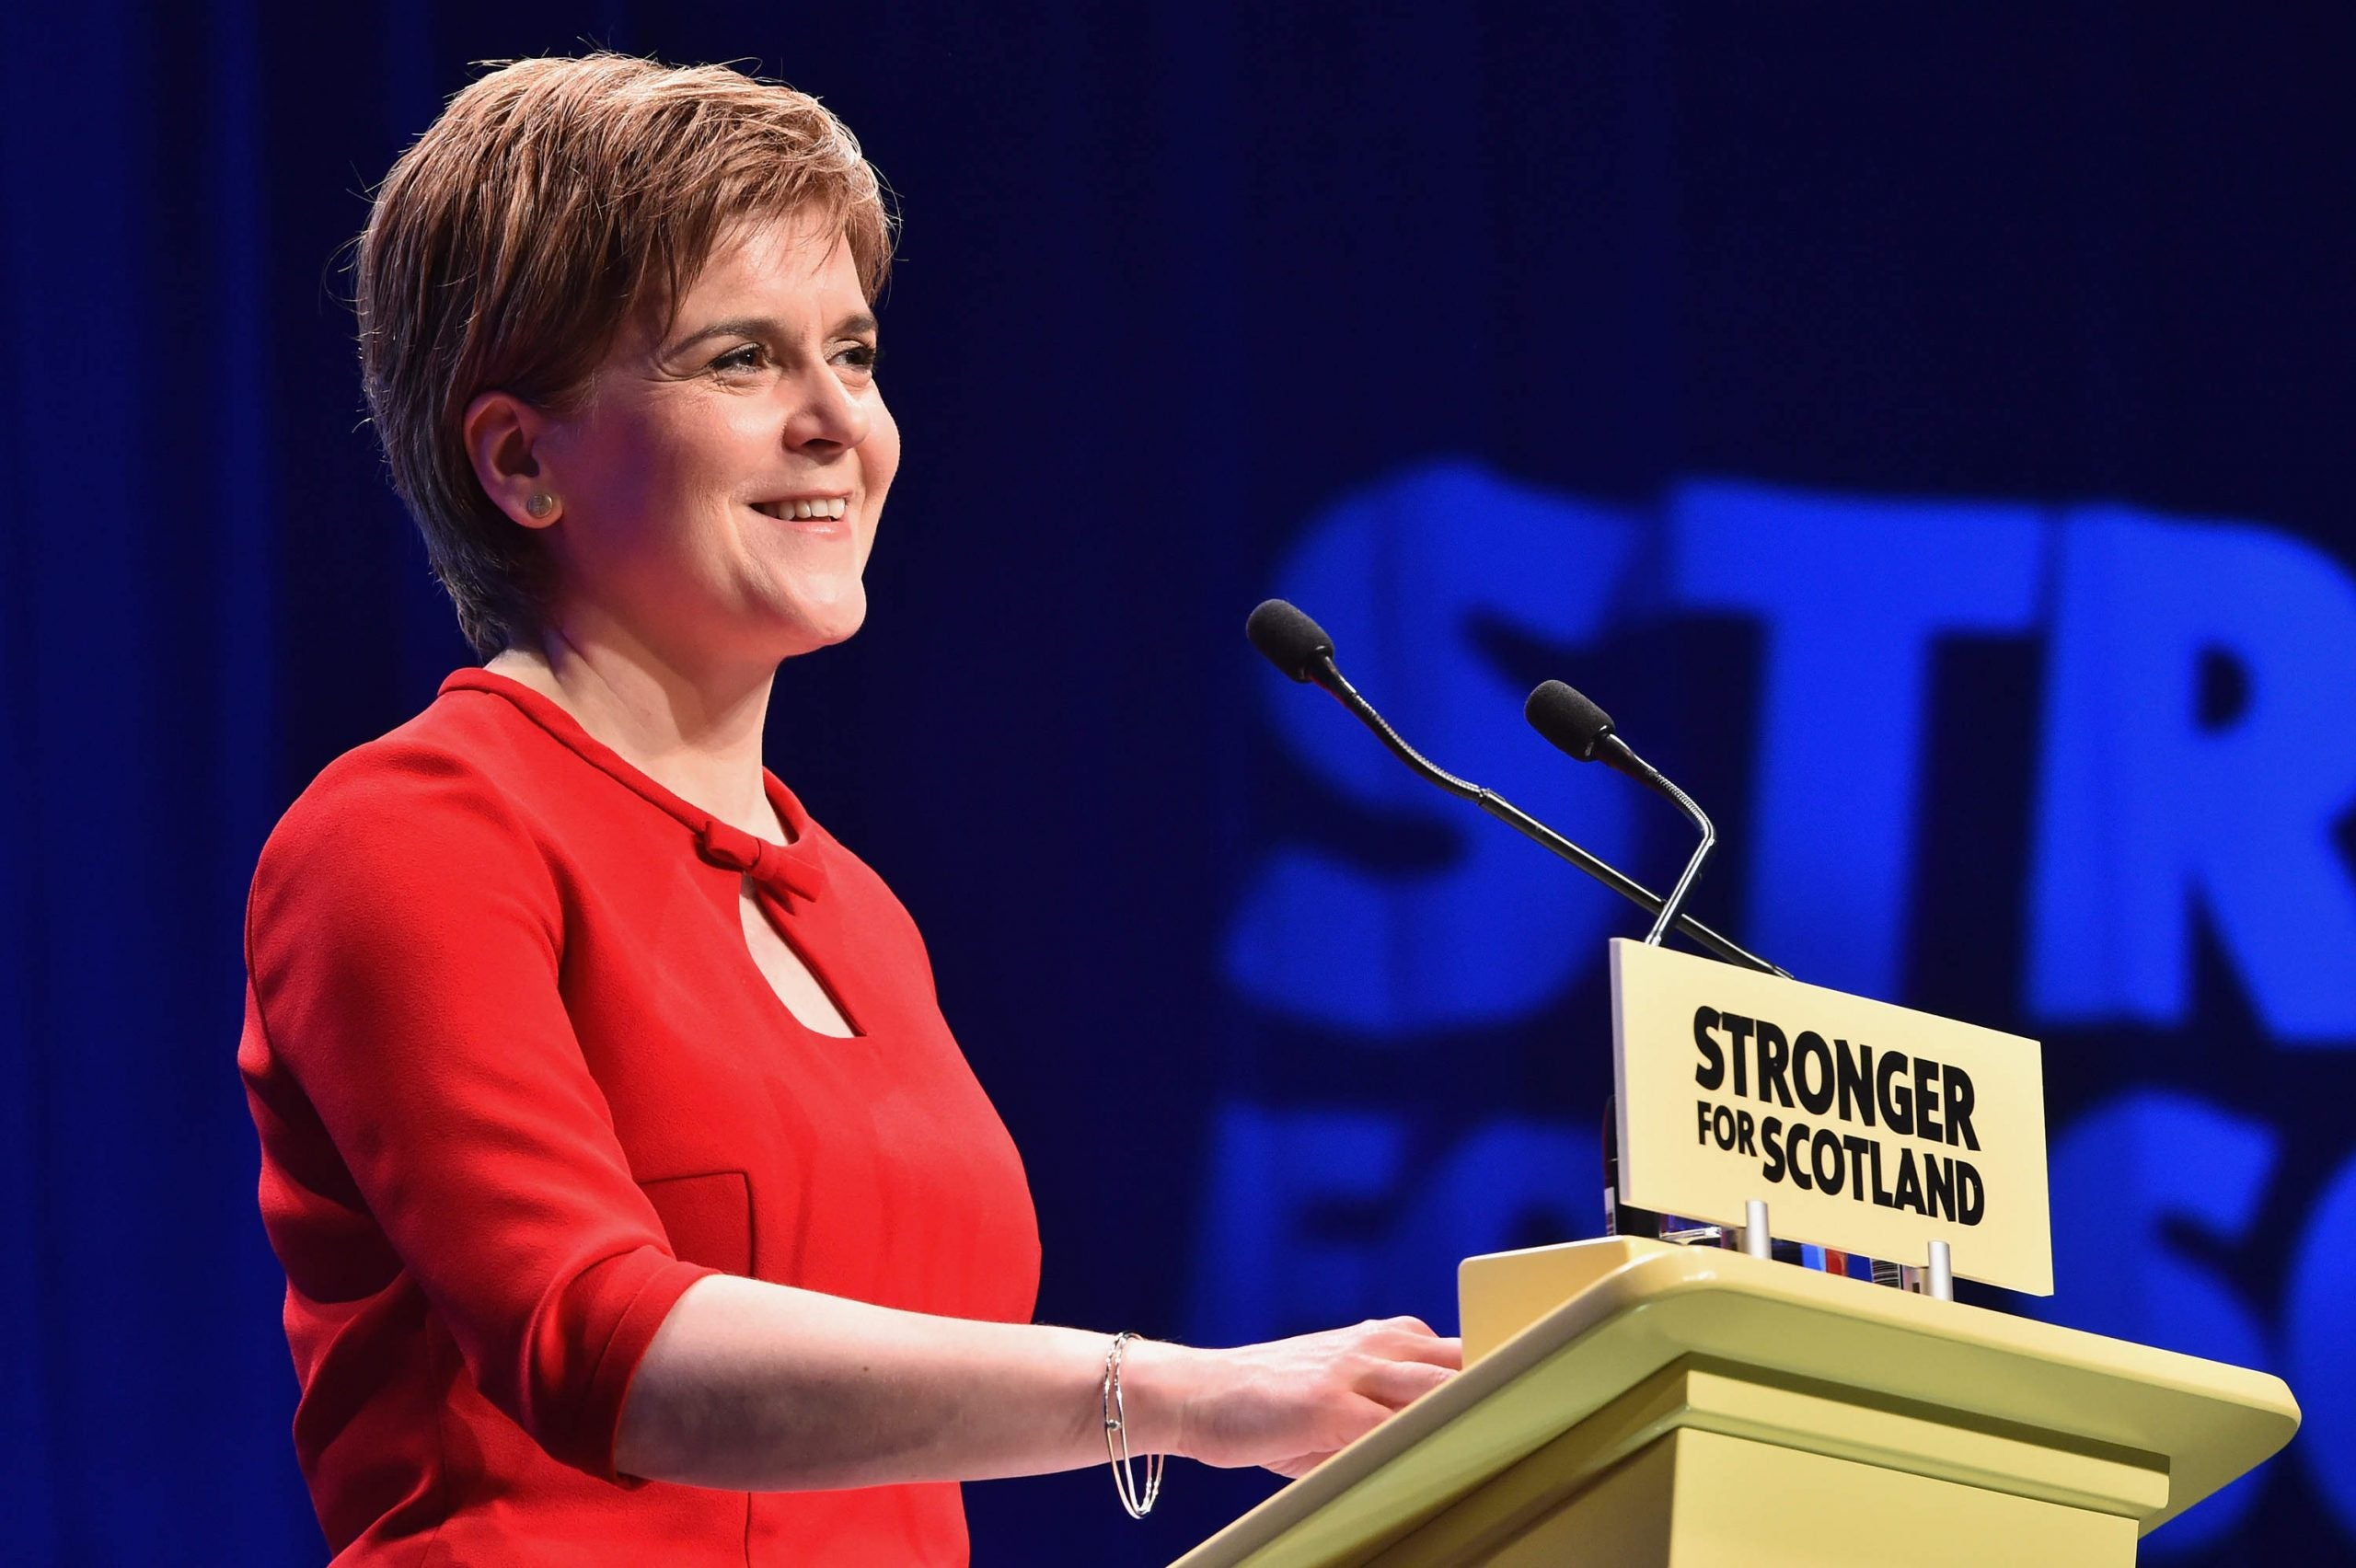 From Tartan to Teflon: Nicola Sturgeon's one-year anniversary as First Minister